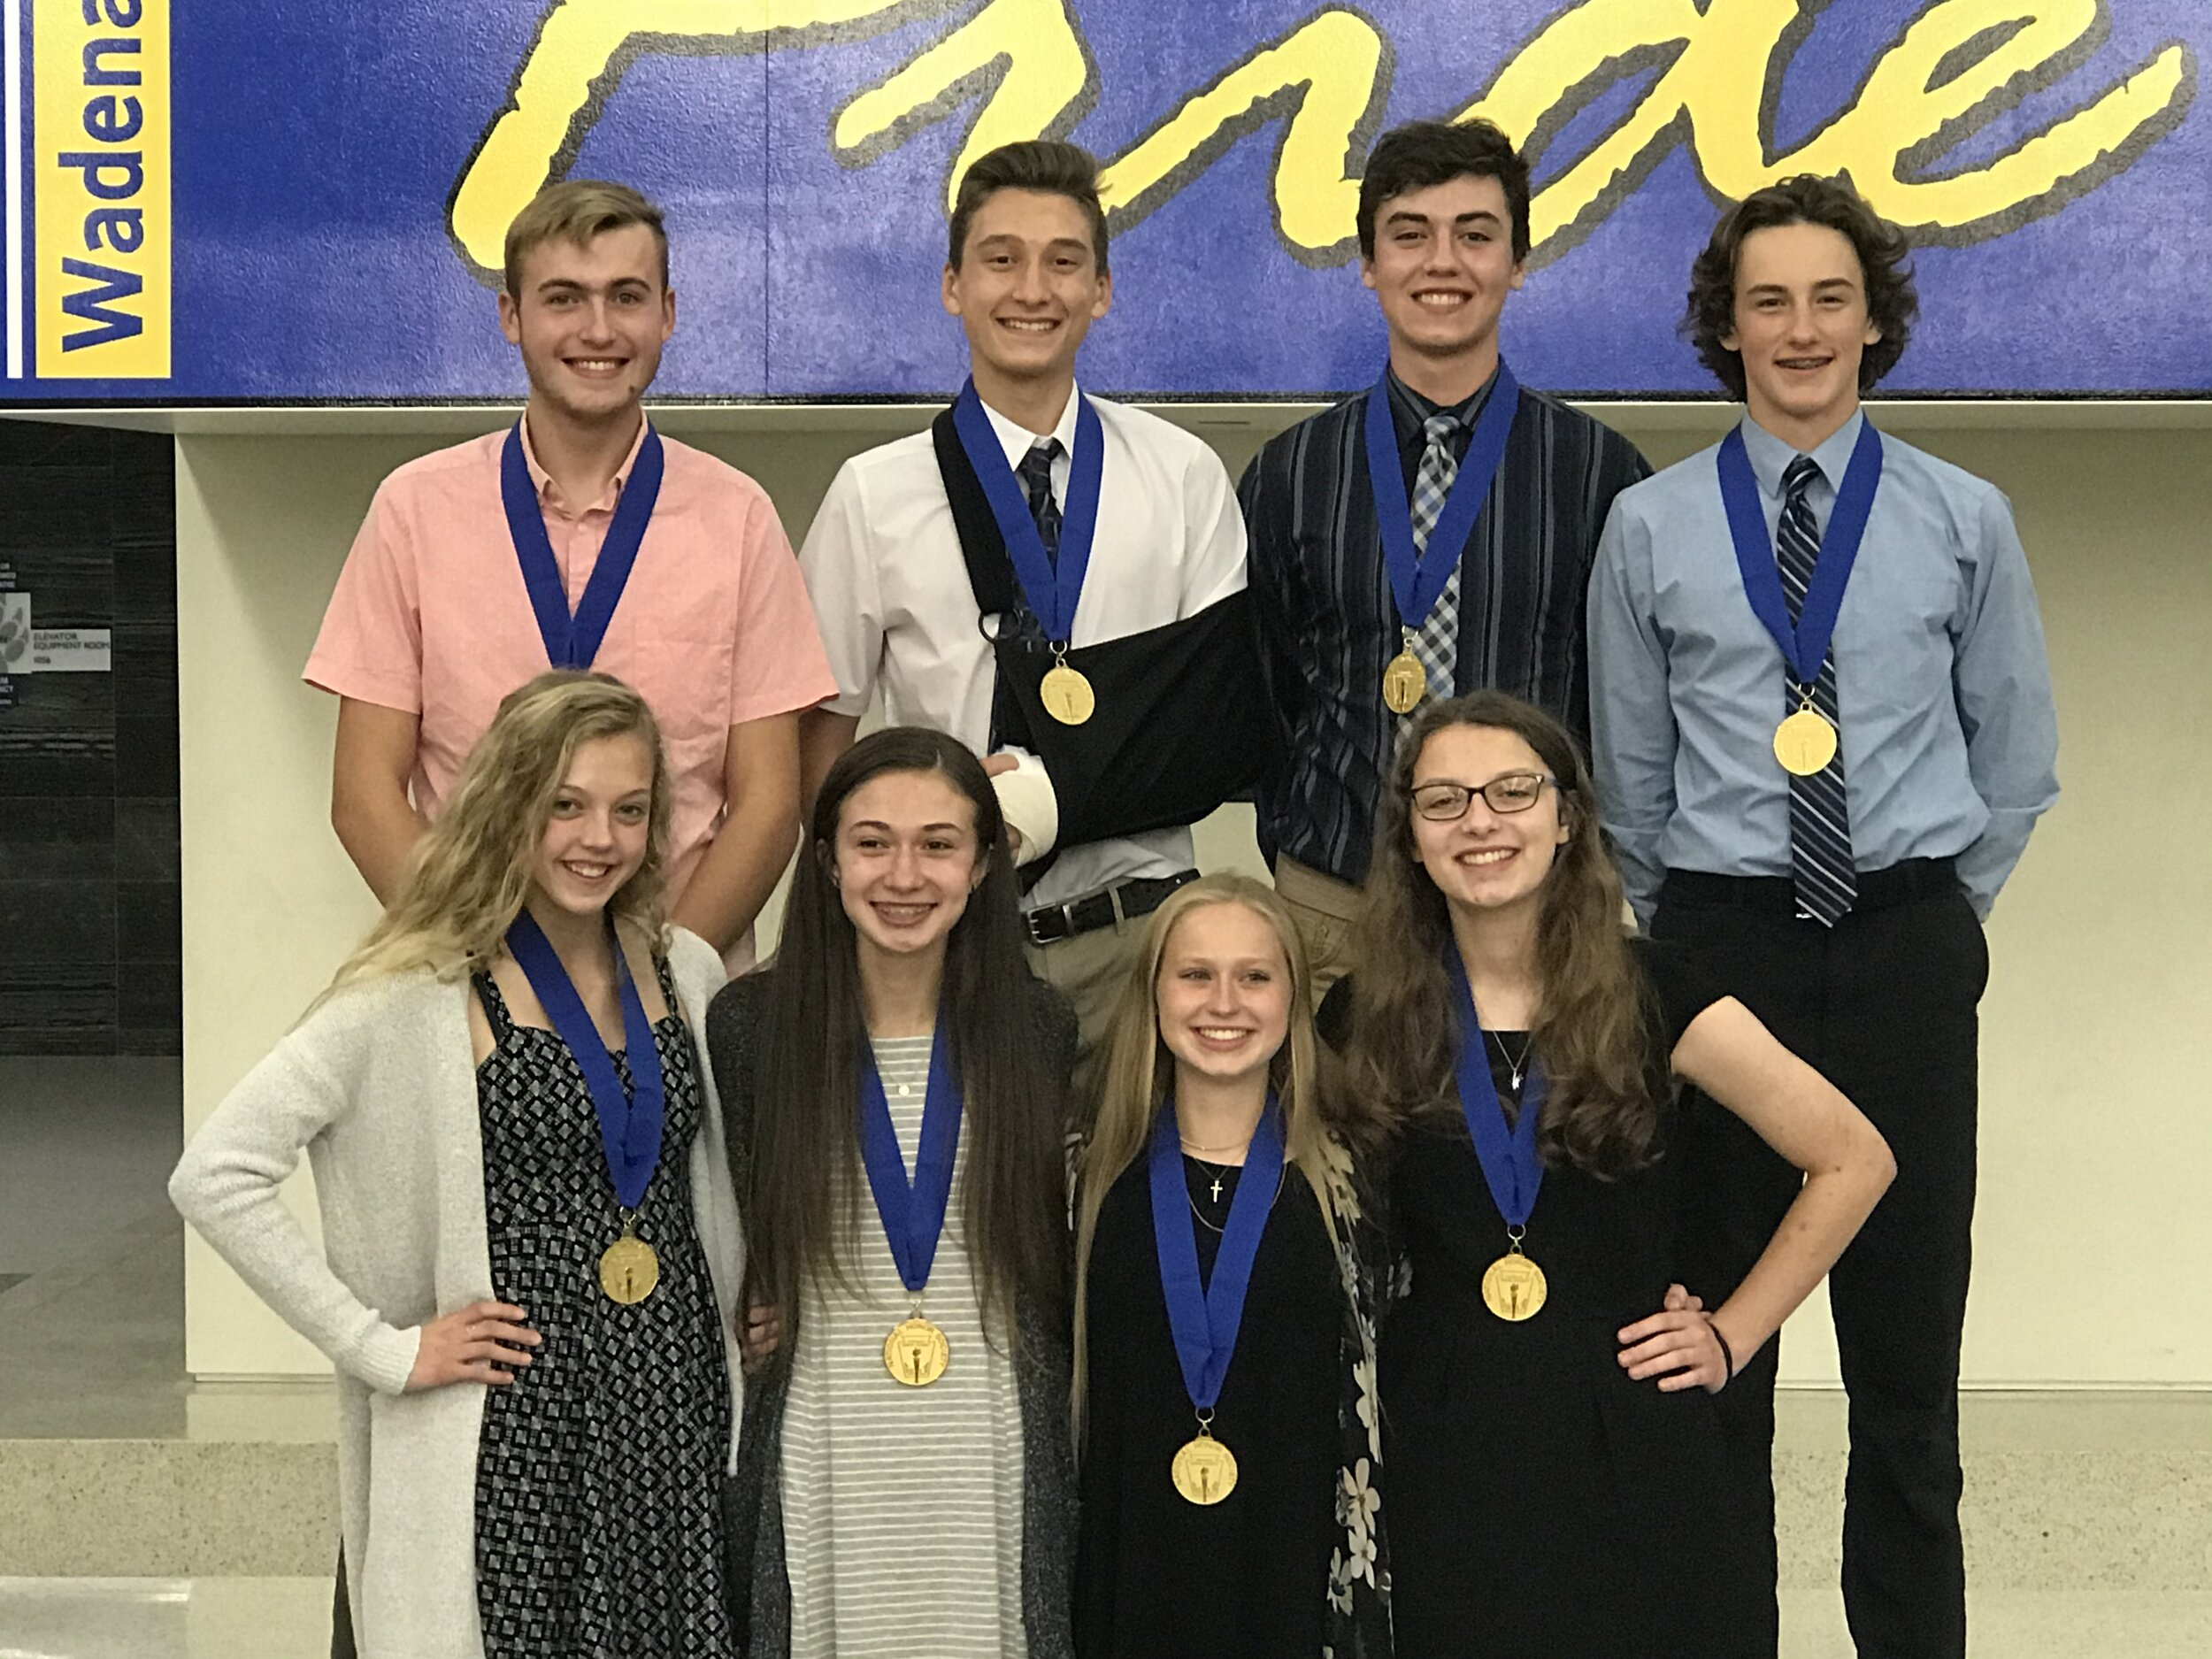 Junior students inducted into Wadena-Deer Creek's National Honor Society chapter include, front row, Emma Bushinger, Kira Sweeney, Emma Mehl and Sara Goetze; back, from left, Elliot Doyle, Aiden Larson, Tony Kreklau and Kade Woods. Not pictured: Nevada Schulz.